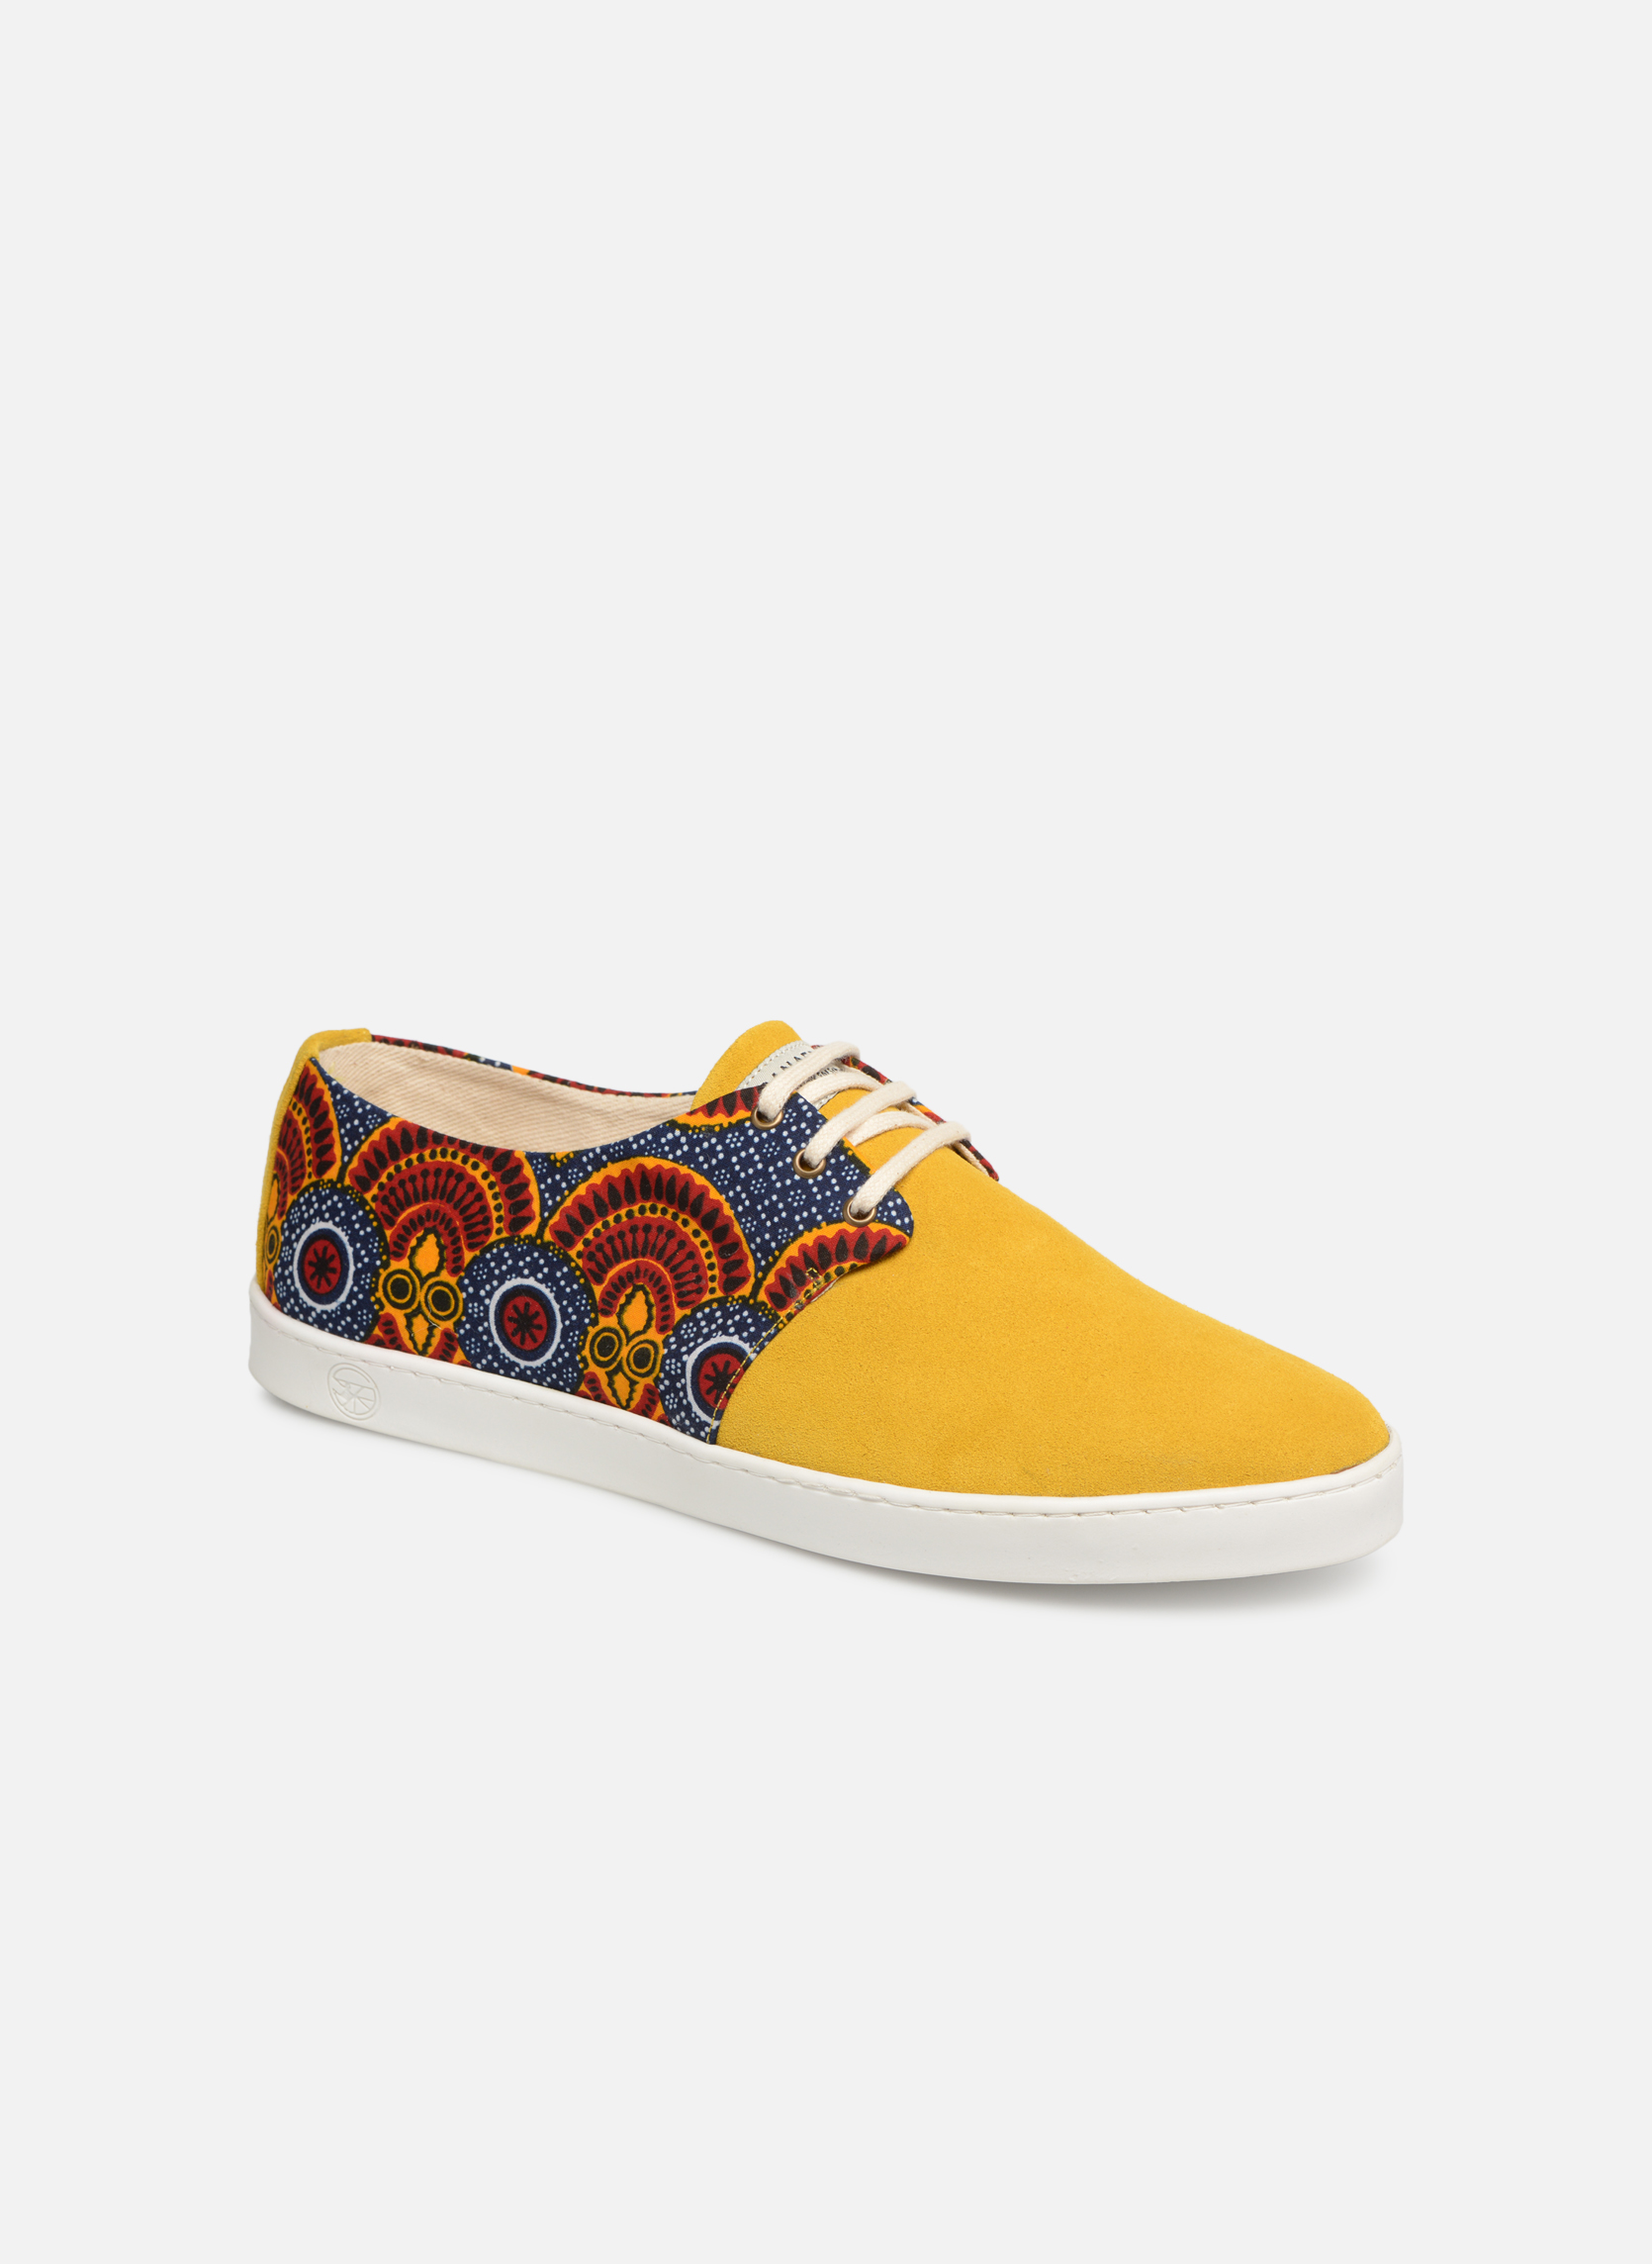 Sneakers Alize M by Panafrica